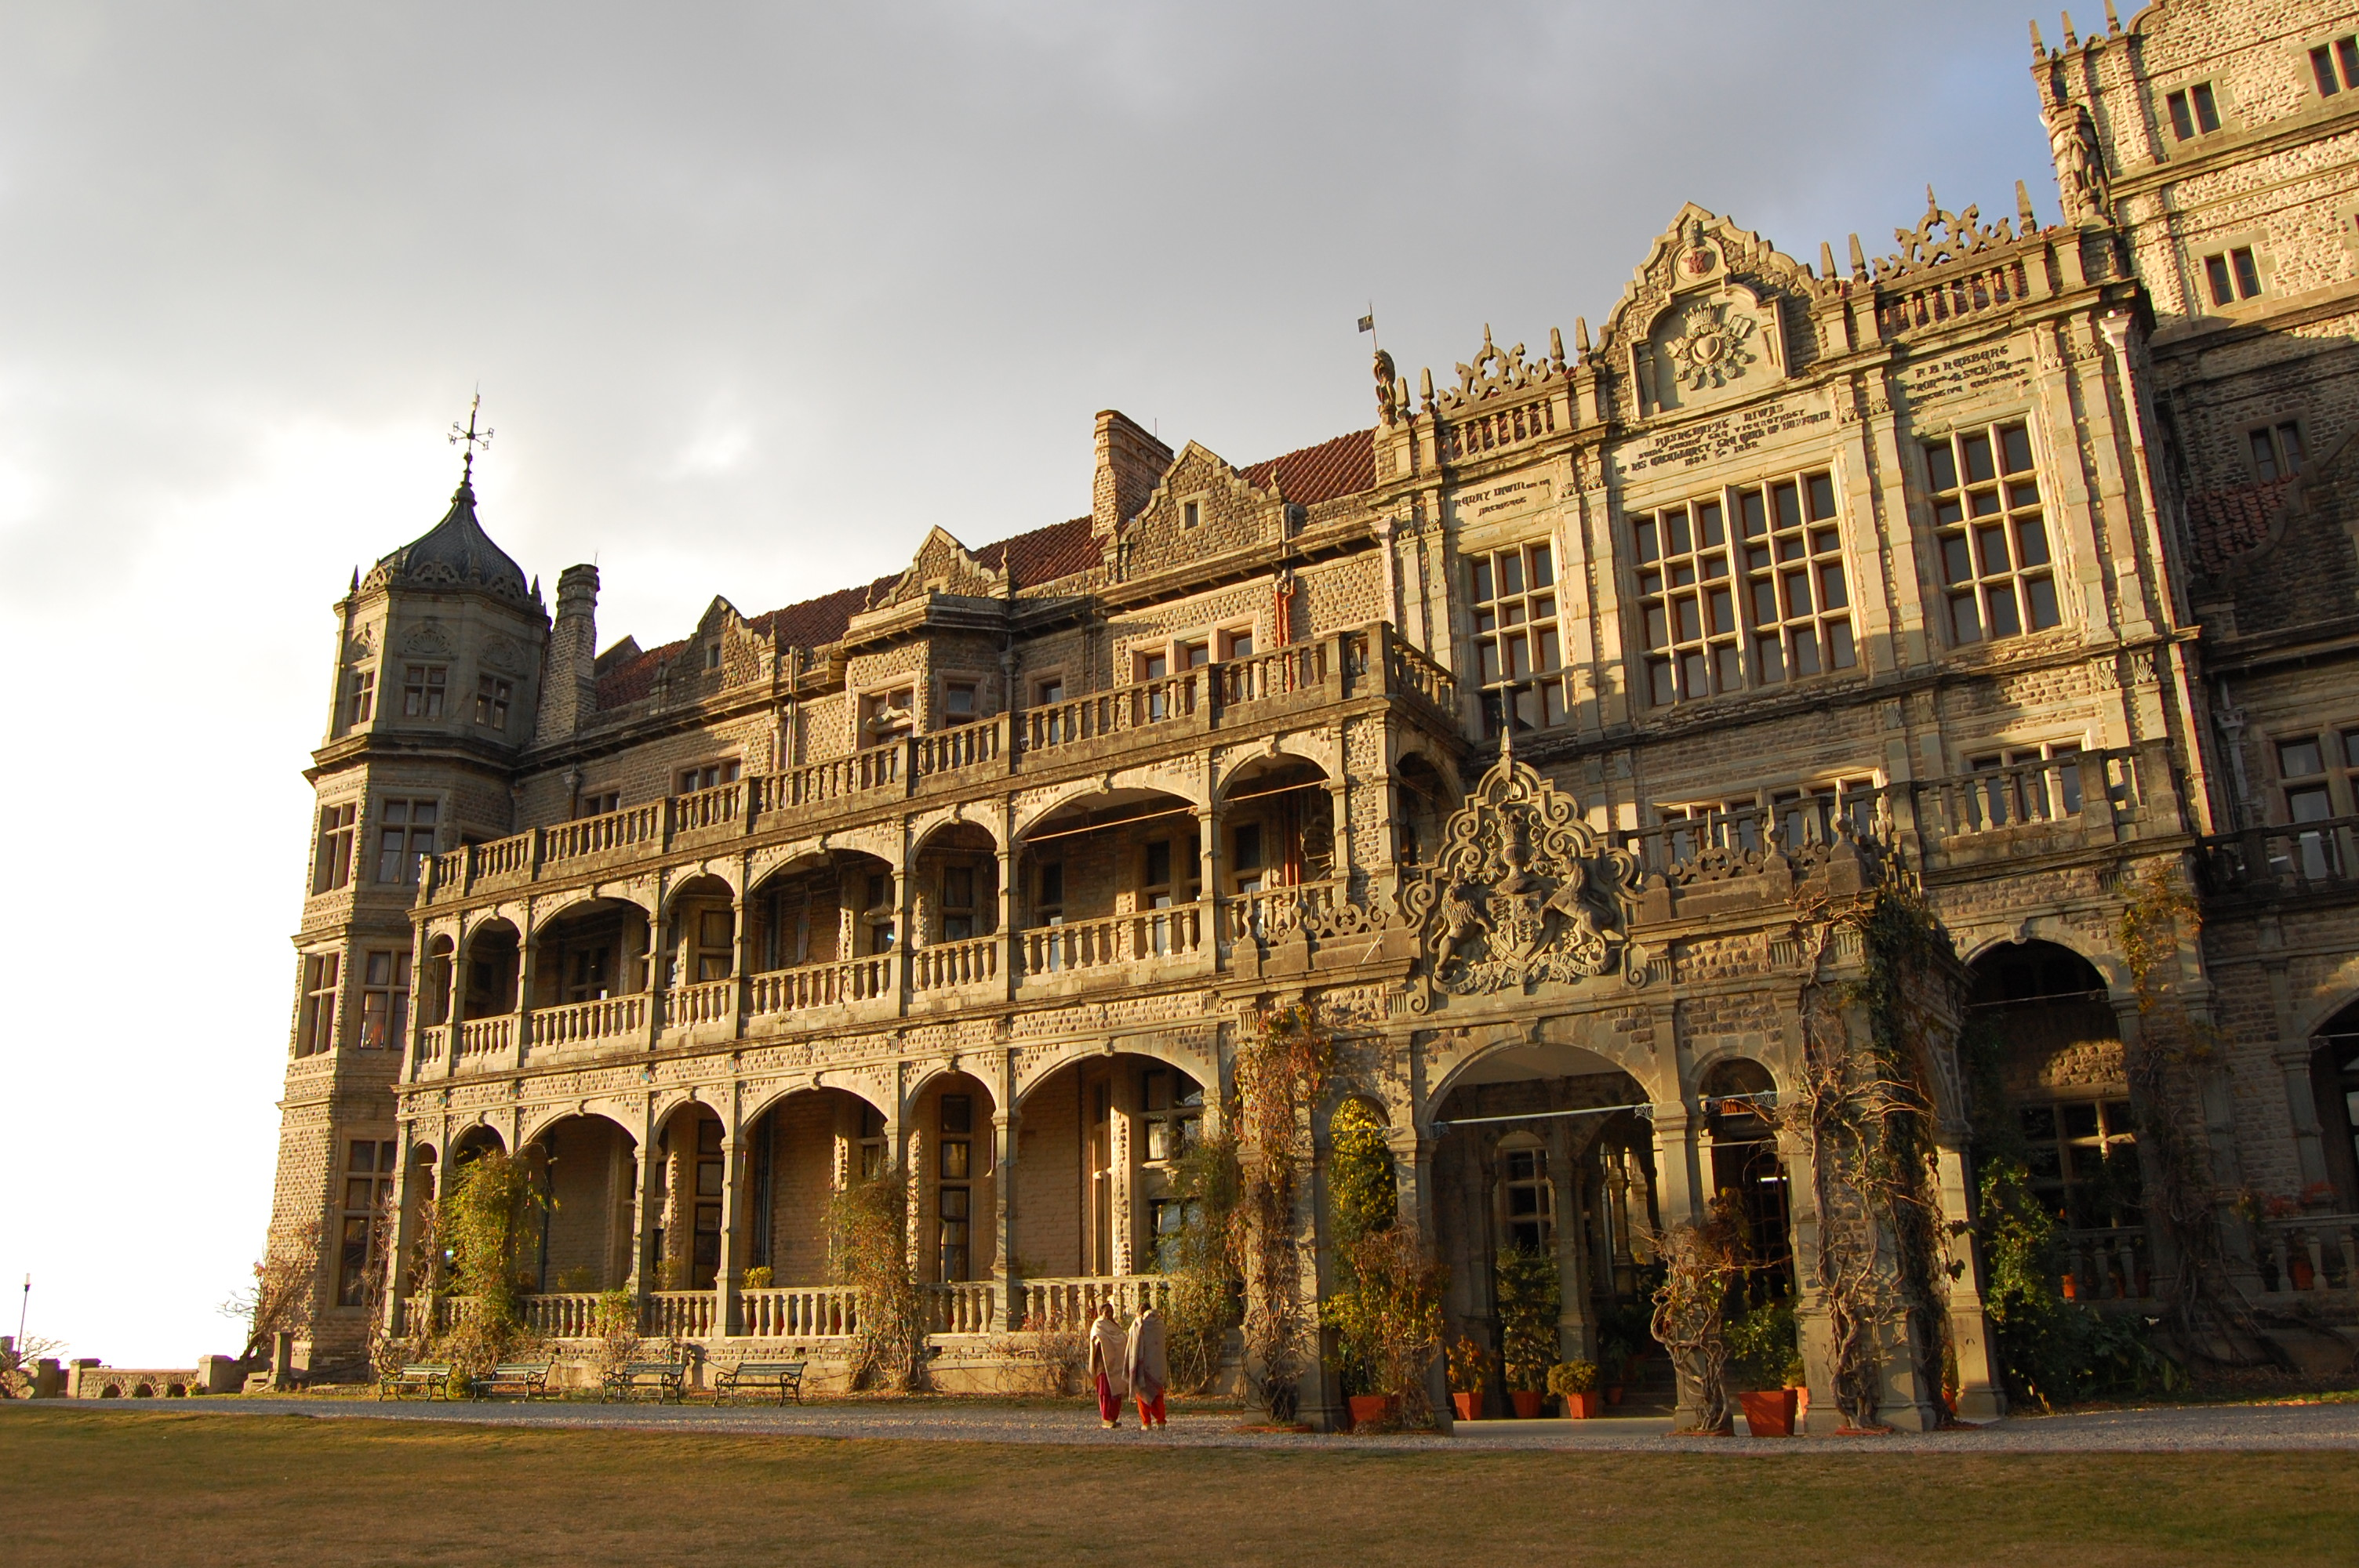 https://upload.wikimedia.org/wikipedia/commons/b/b0/Entrance_porch_of_Rashtrapati_Niwas%2C_Shimla.jpg